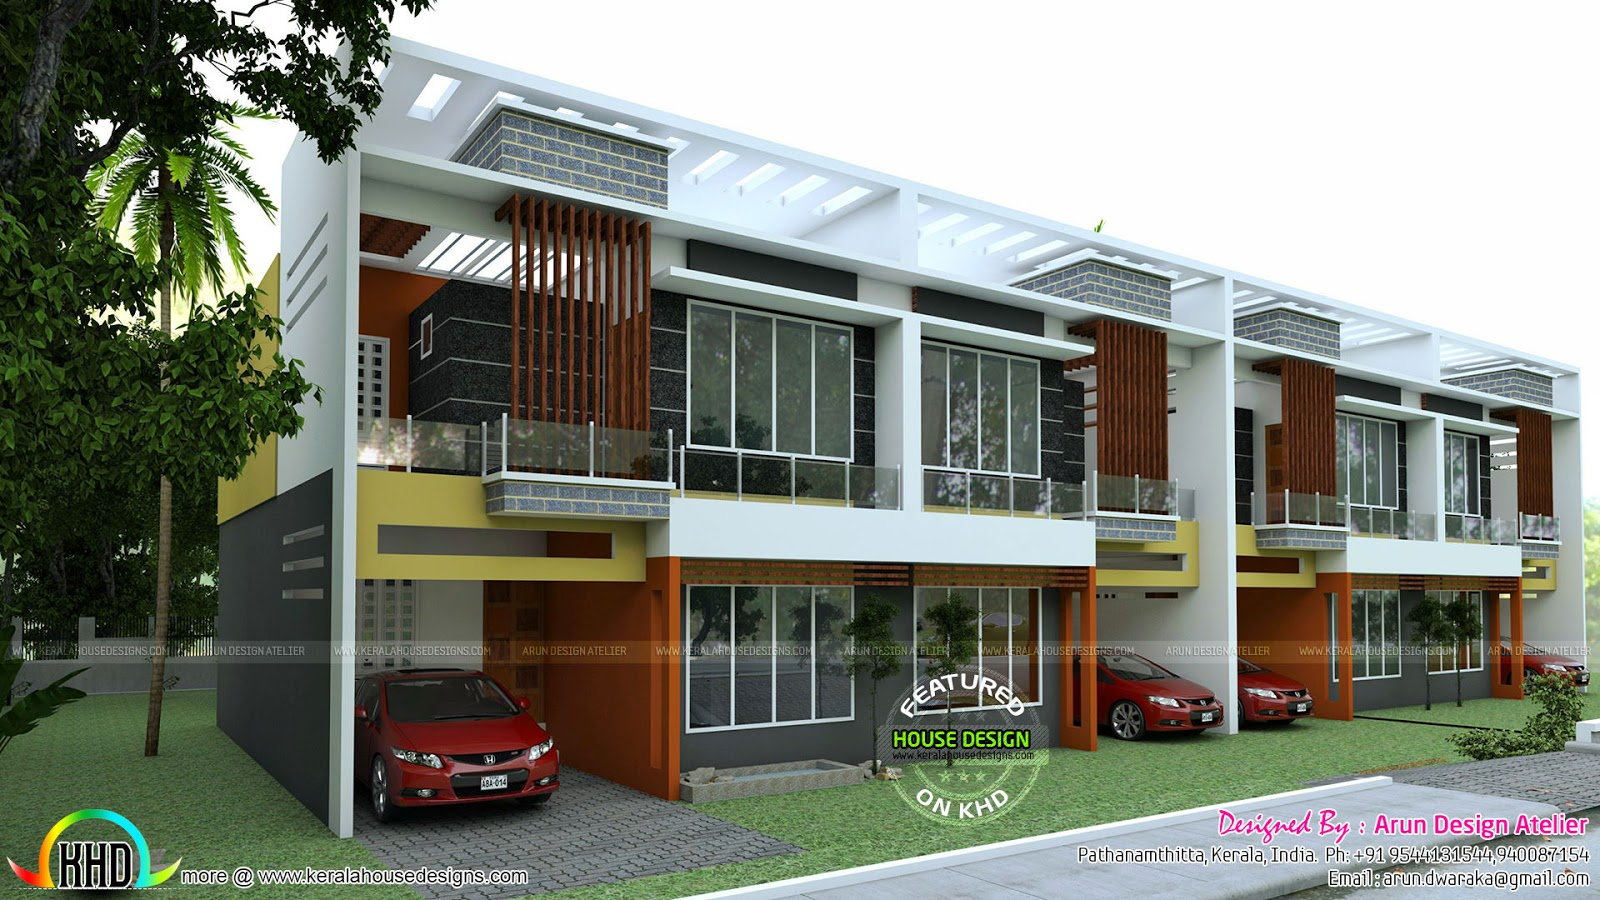 Row house plan 1550 sq ft kerala home design and floor plans for Row house design plans